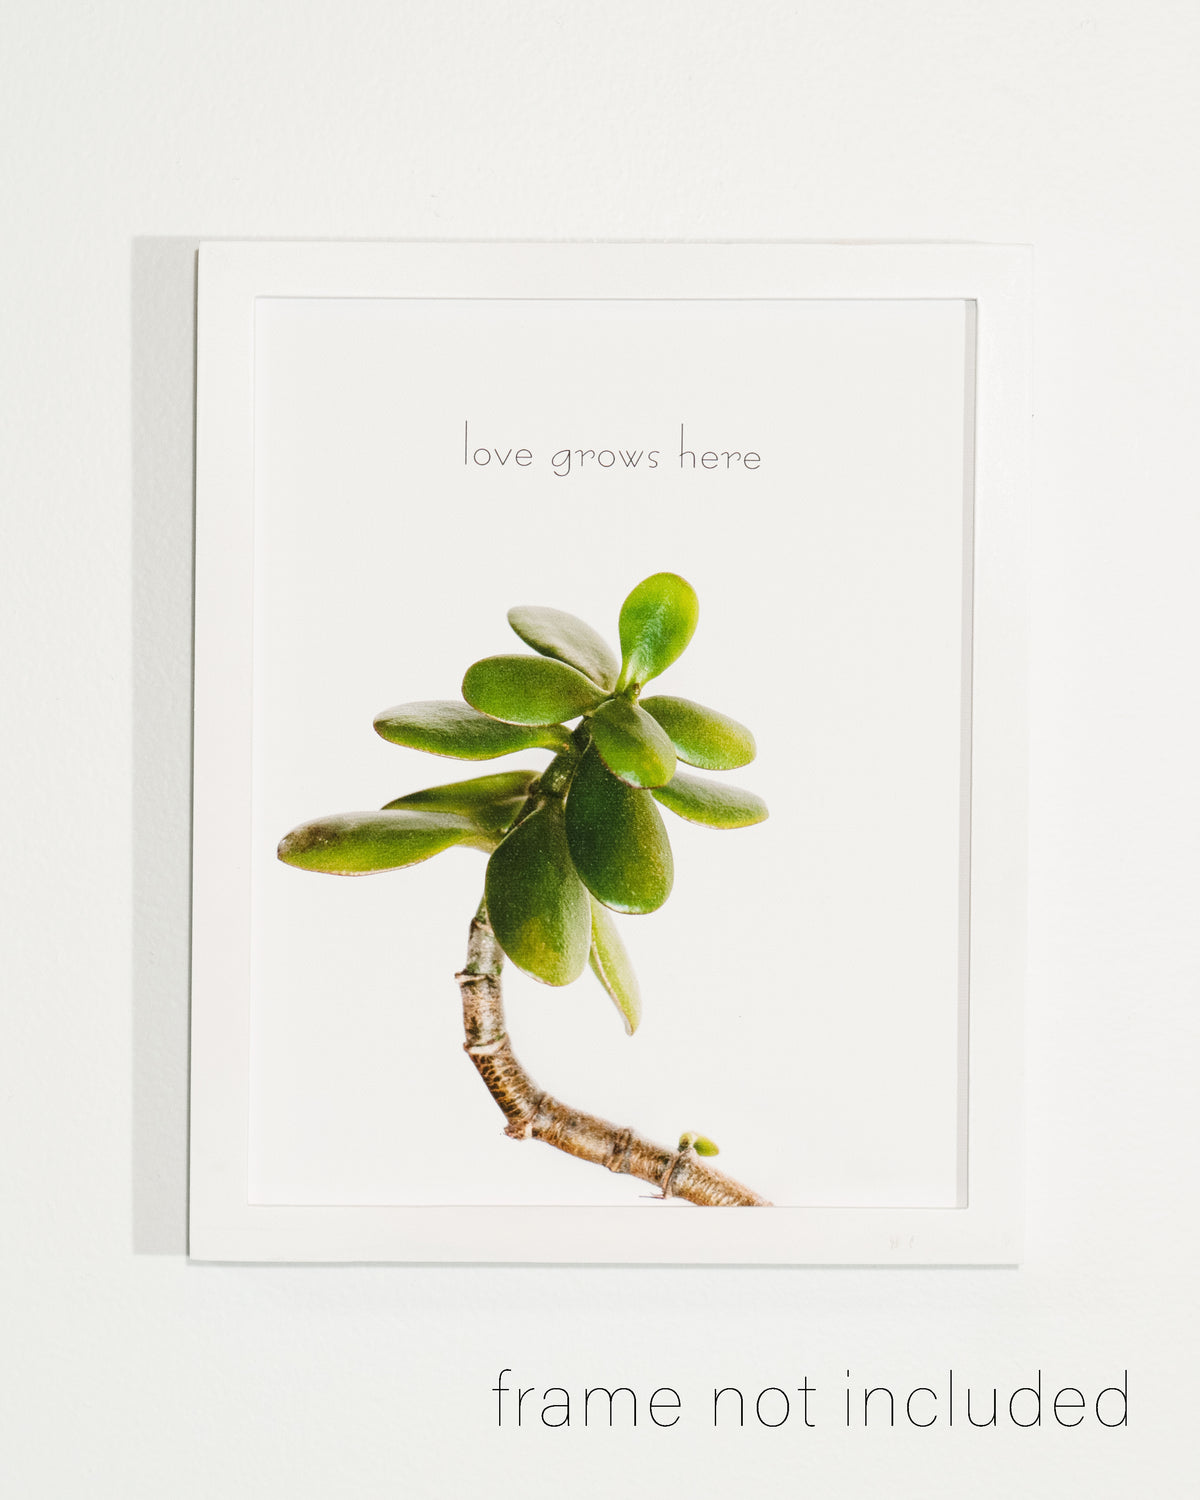 framed print of Jade plant with white background